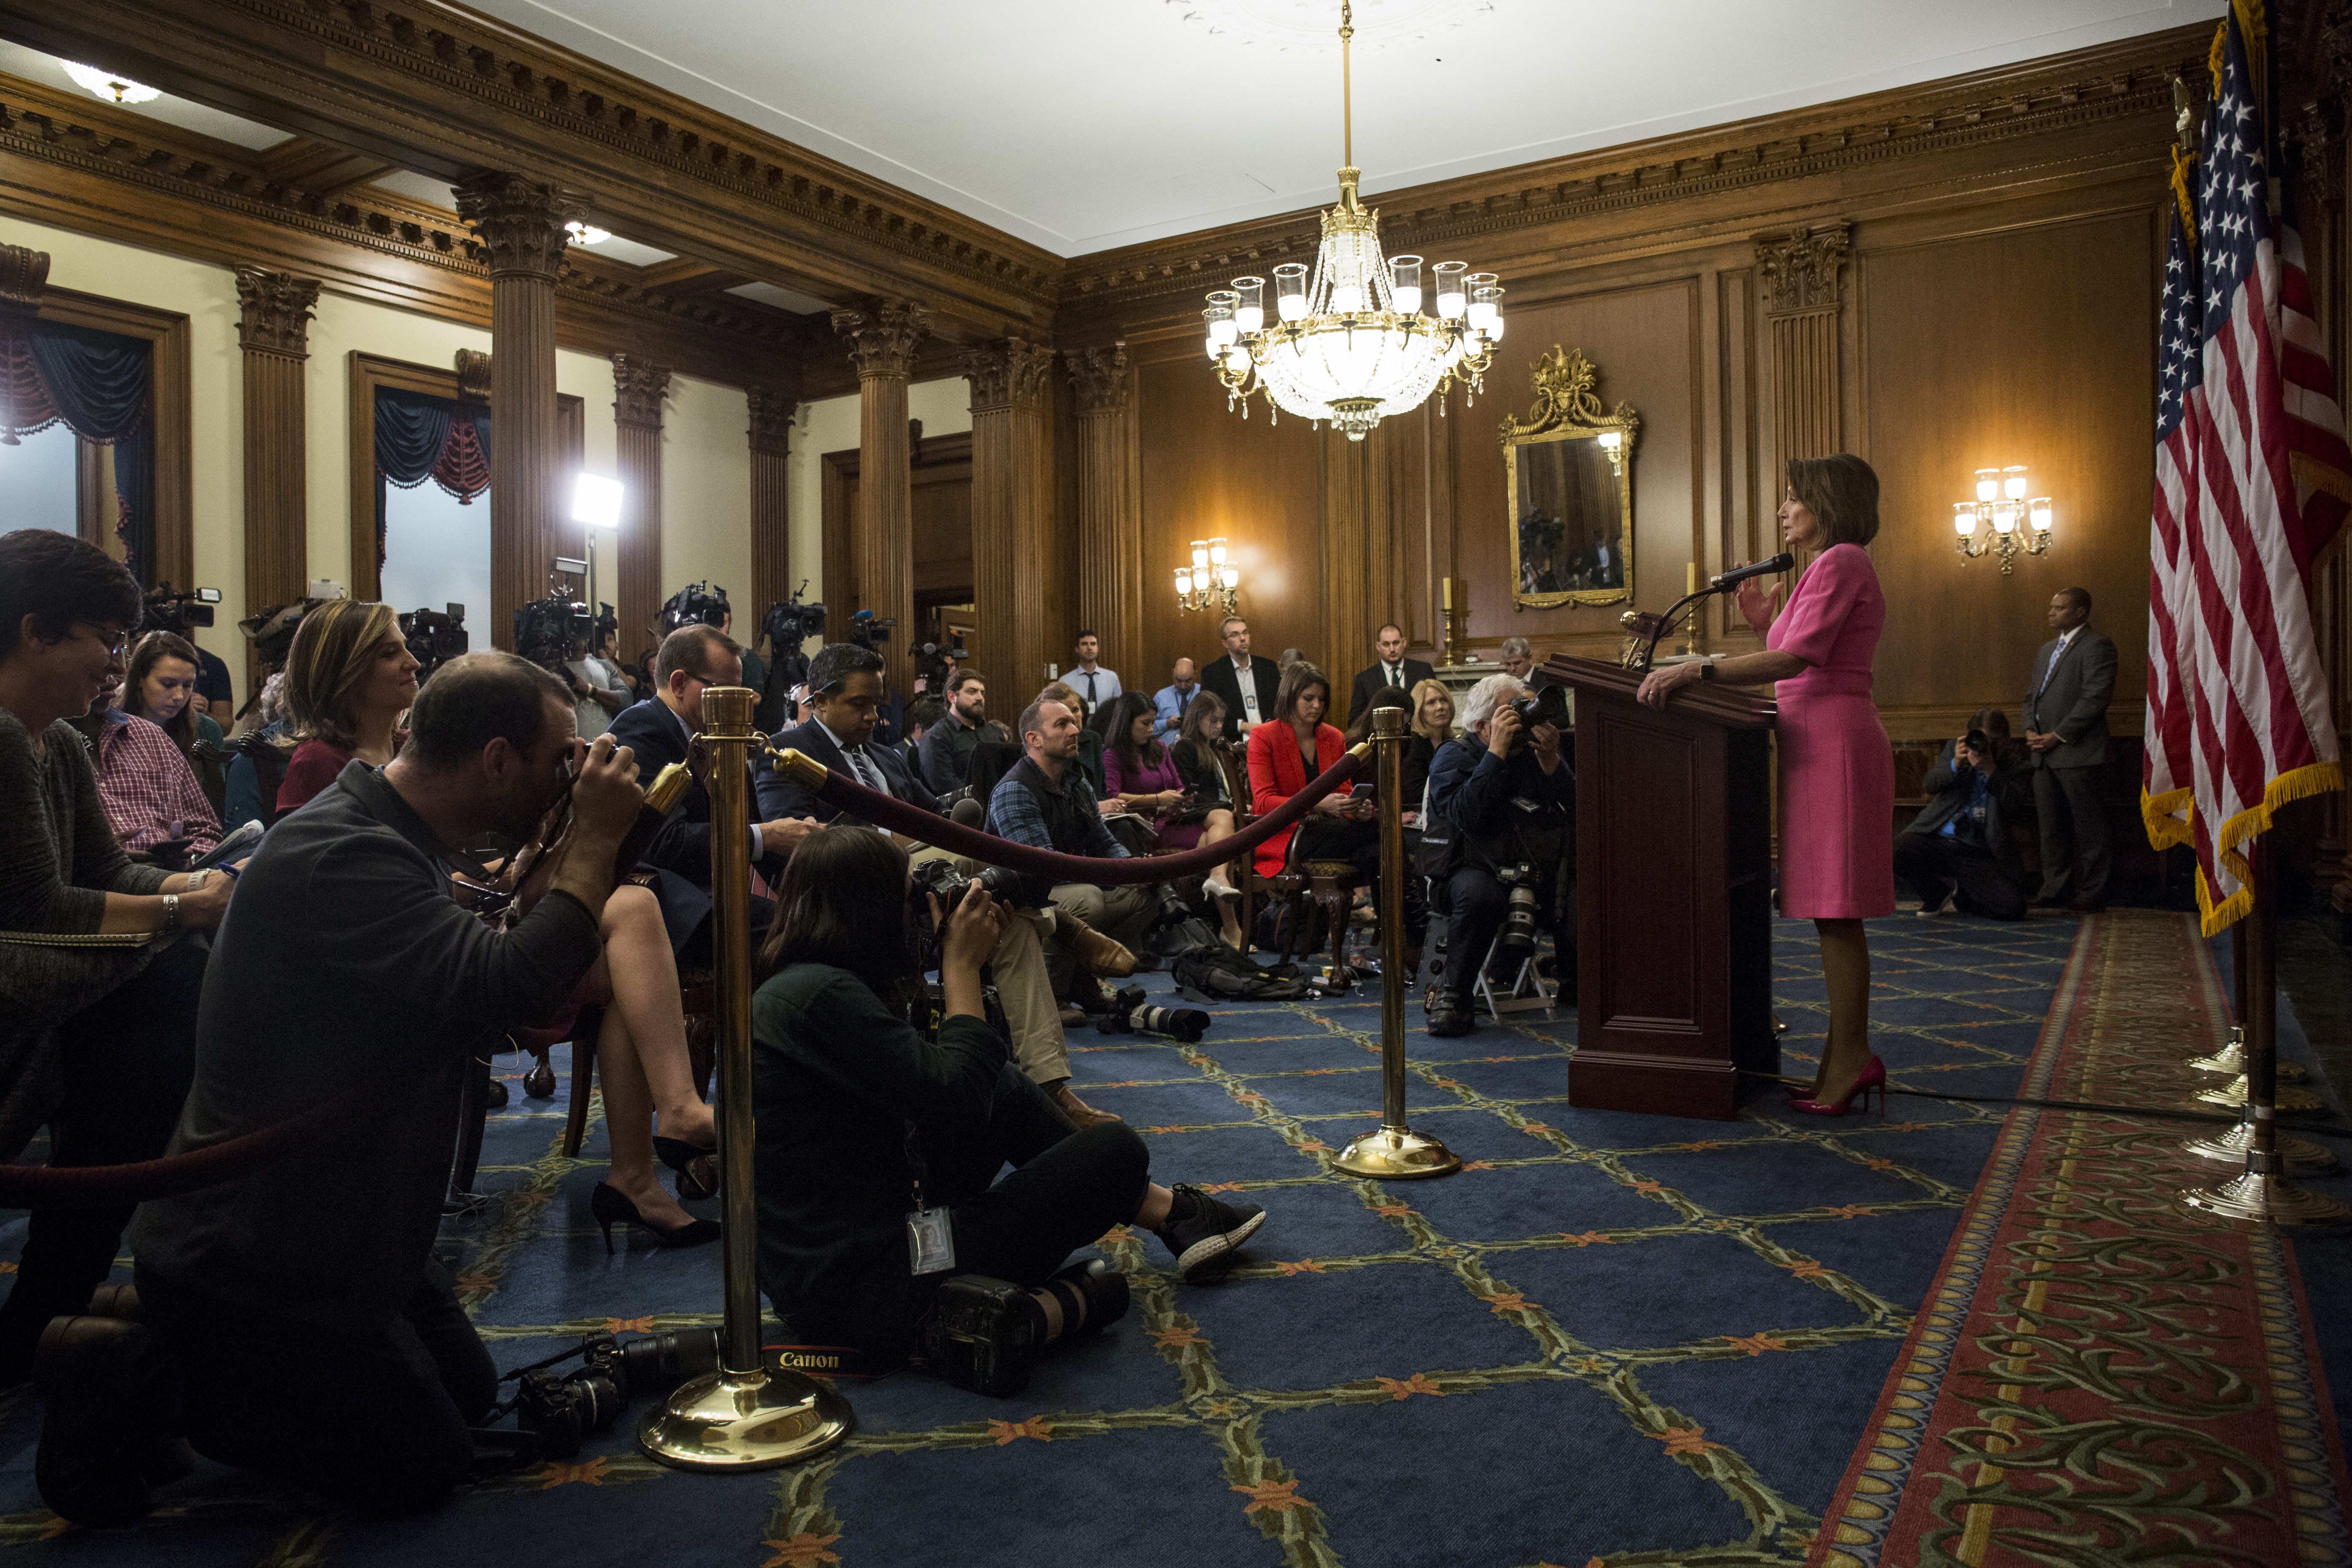 House Minority Leader Nancy Pelosi (D-CA) holds a news conference following the 2018 midterm elections at the Capitol Building on November 7, 2018 in Washington, DC. (Zach Gibson/Getty Images)